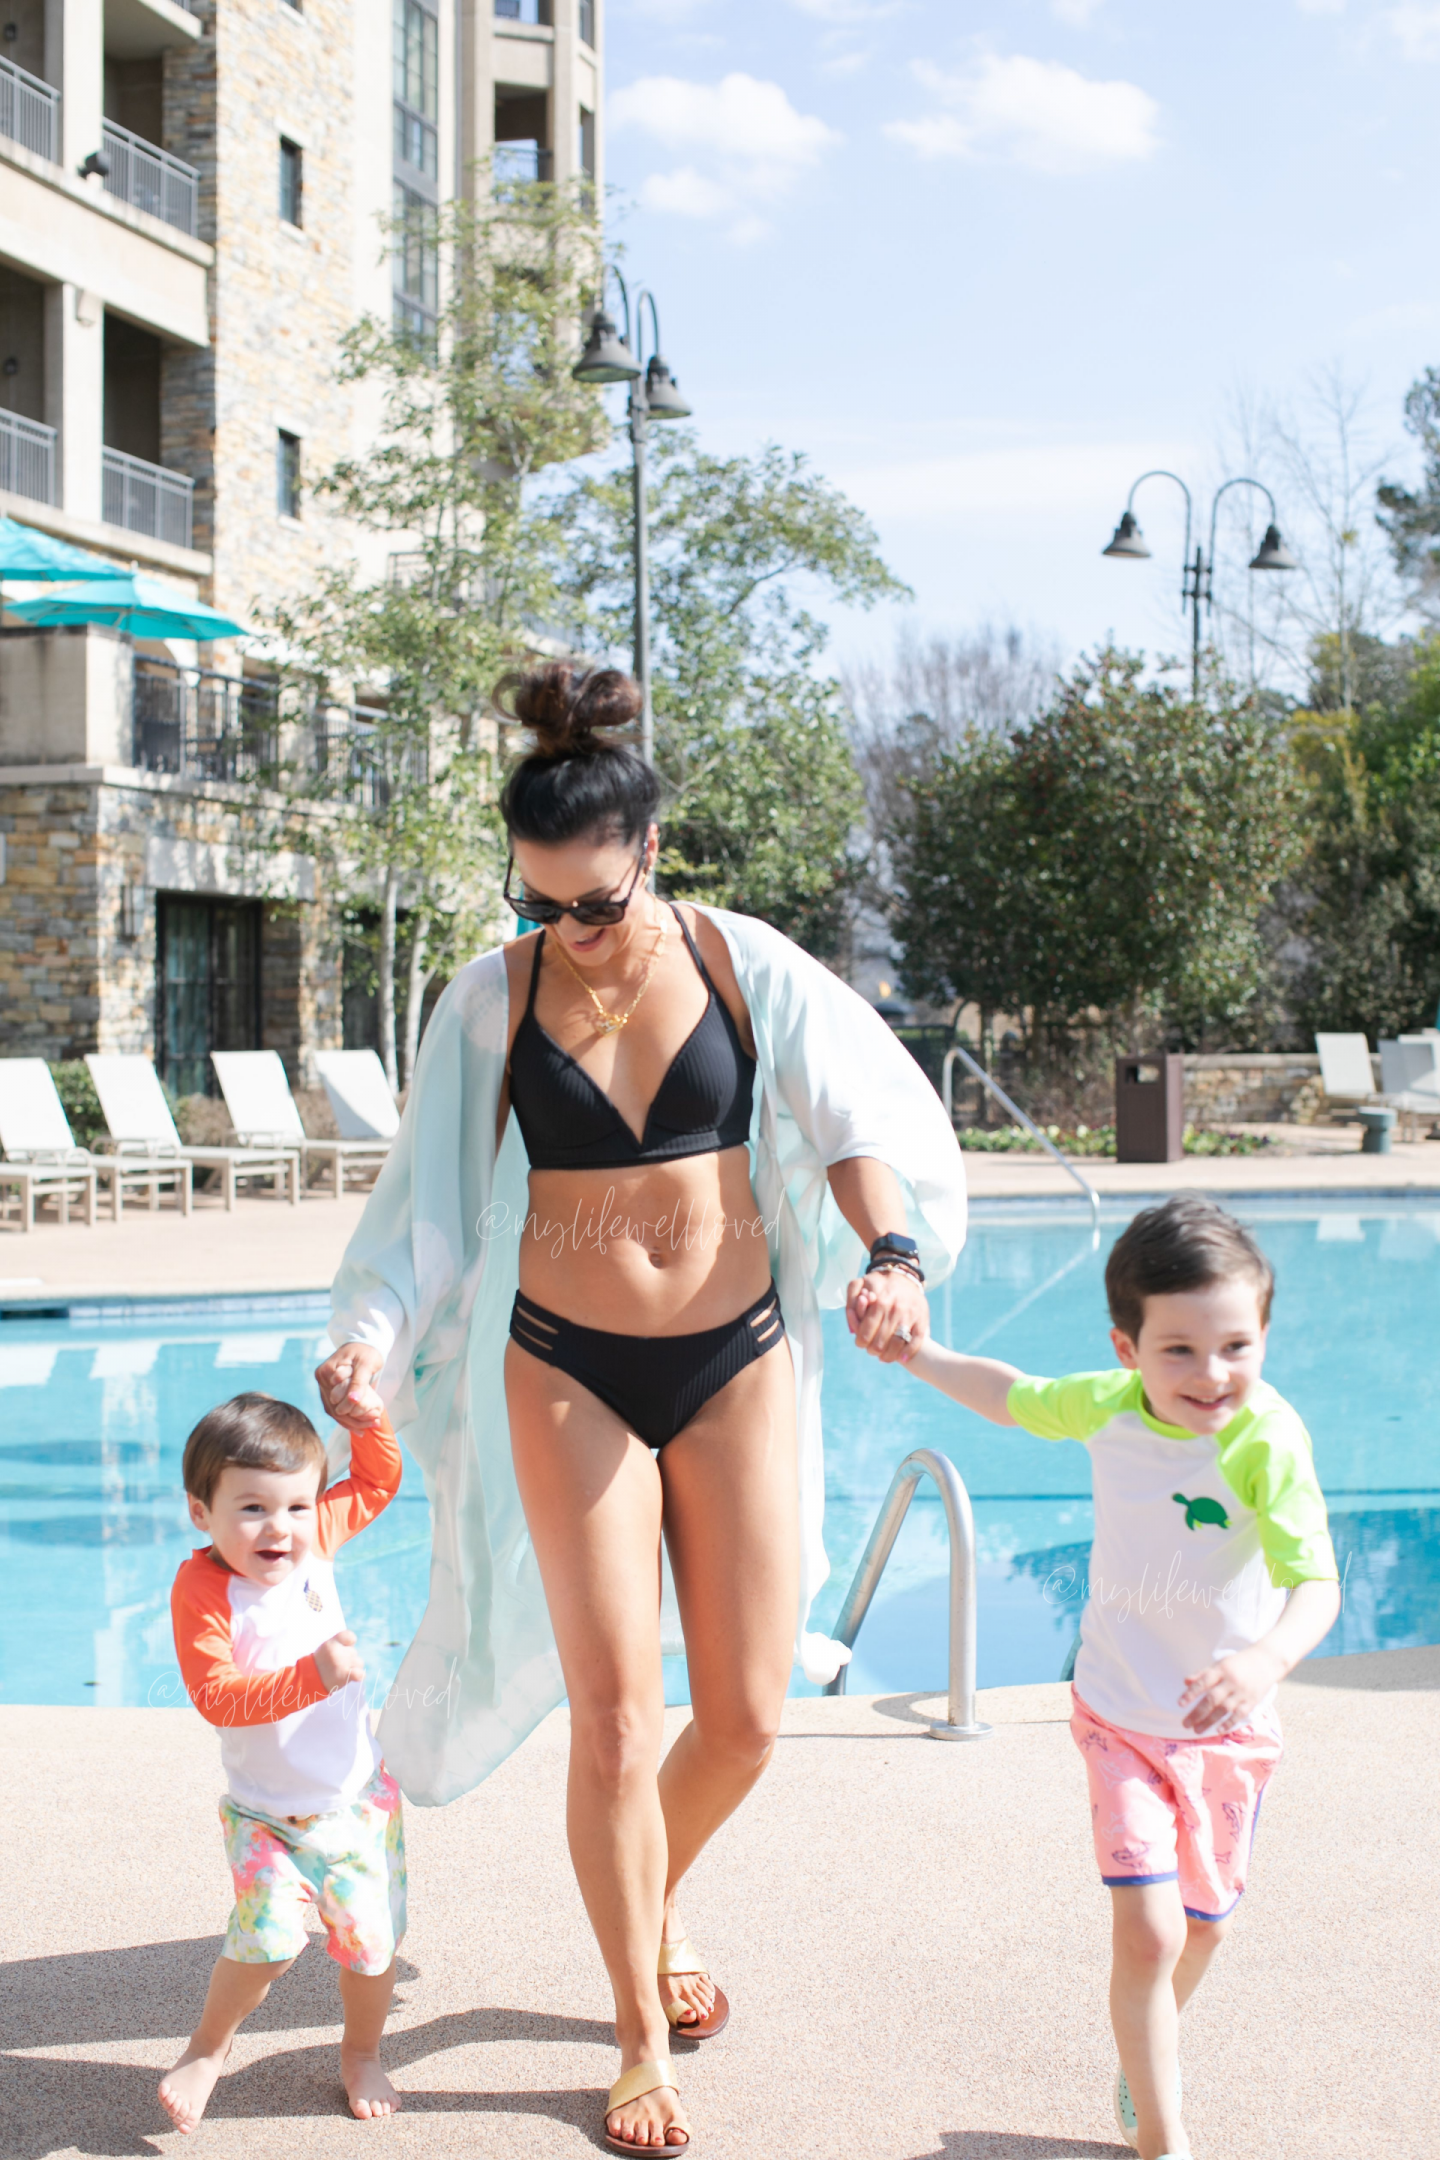 Littles Swim In Style: The Best Target Kids Swimwear by Alabama Family + Style blogger, Heather Brown // My Life Well Loved